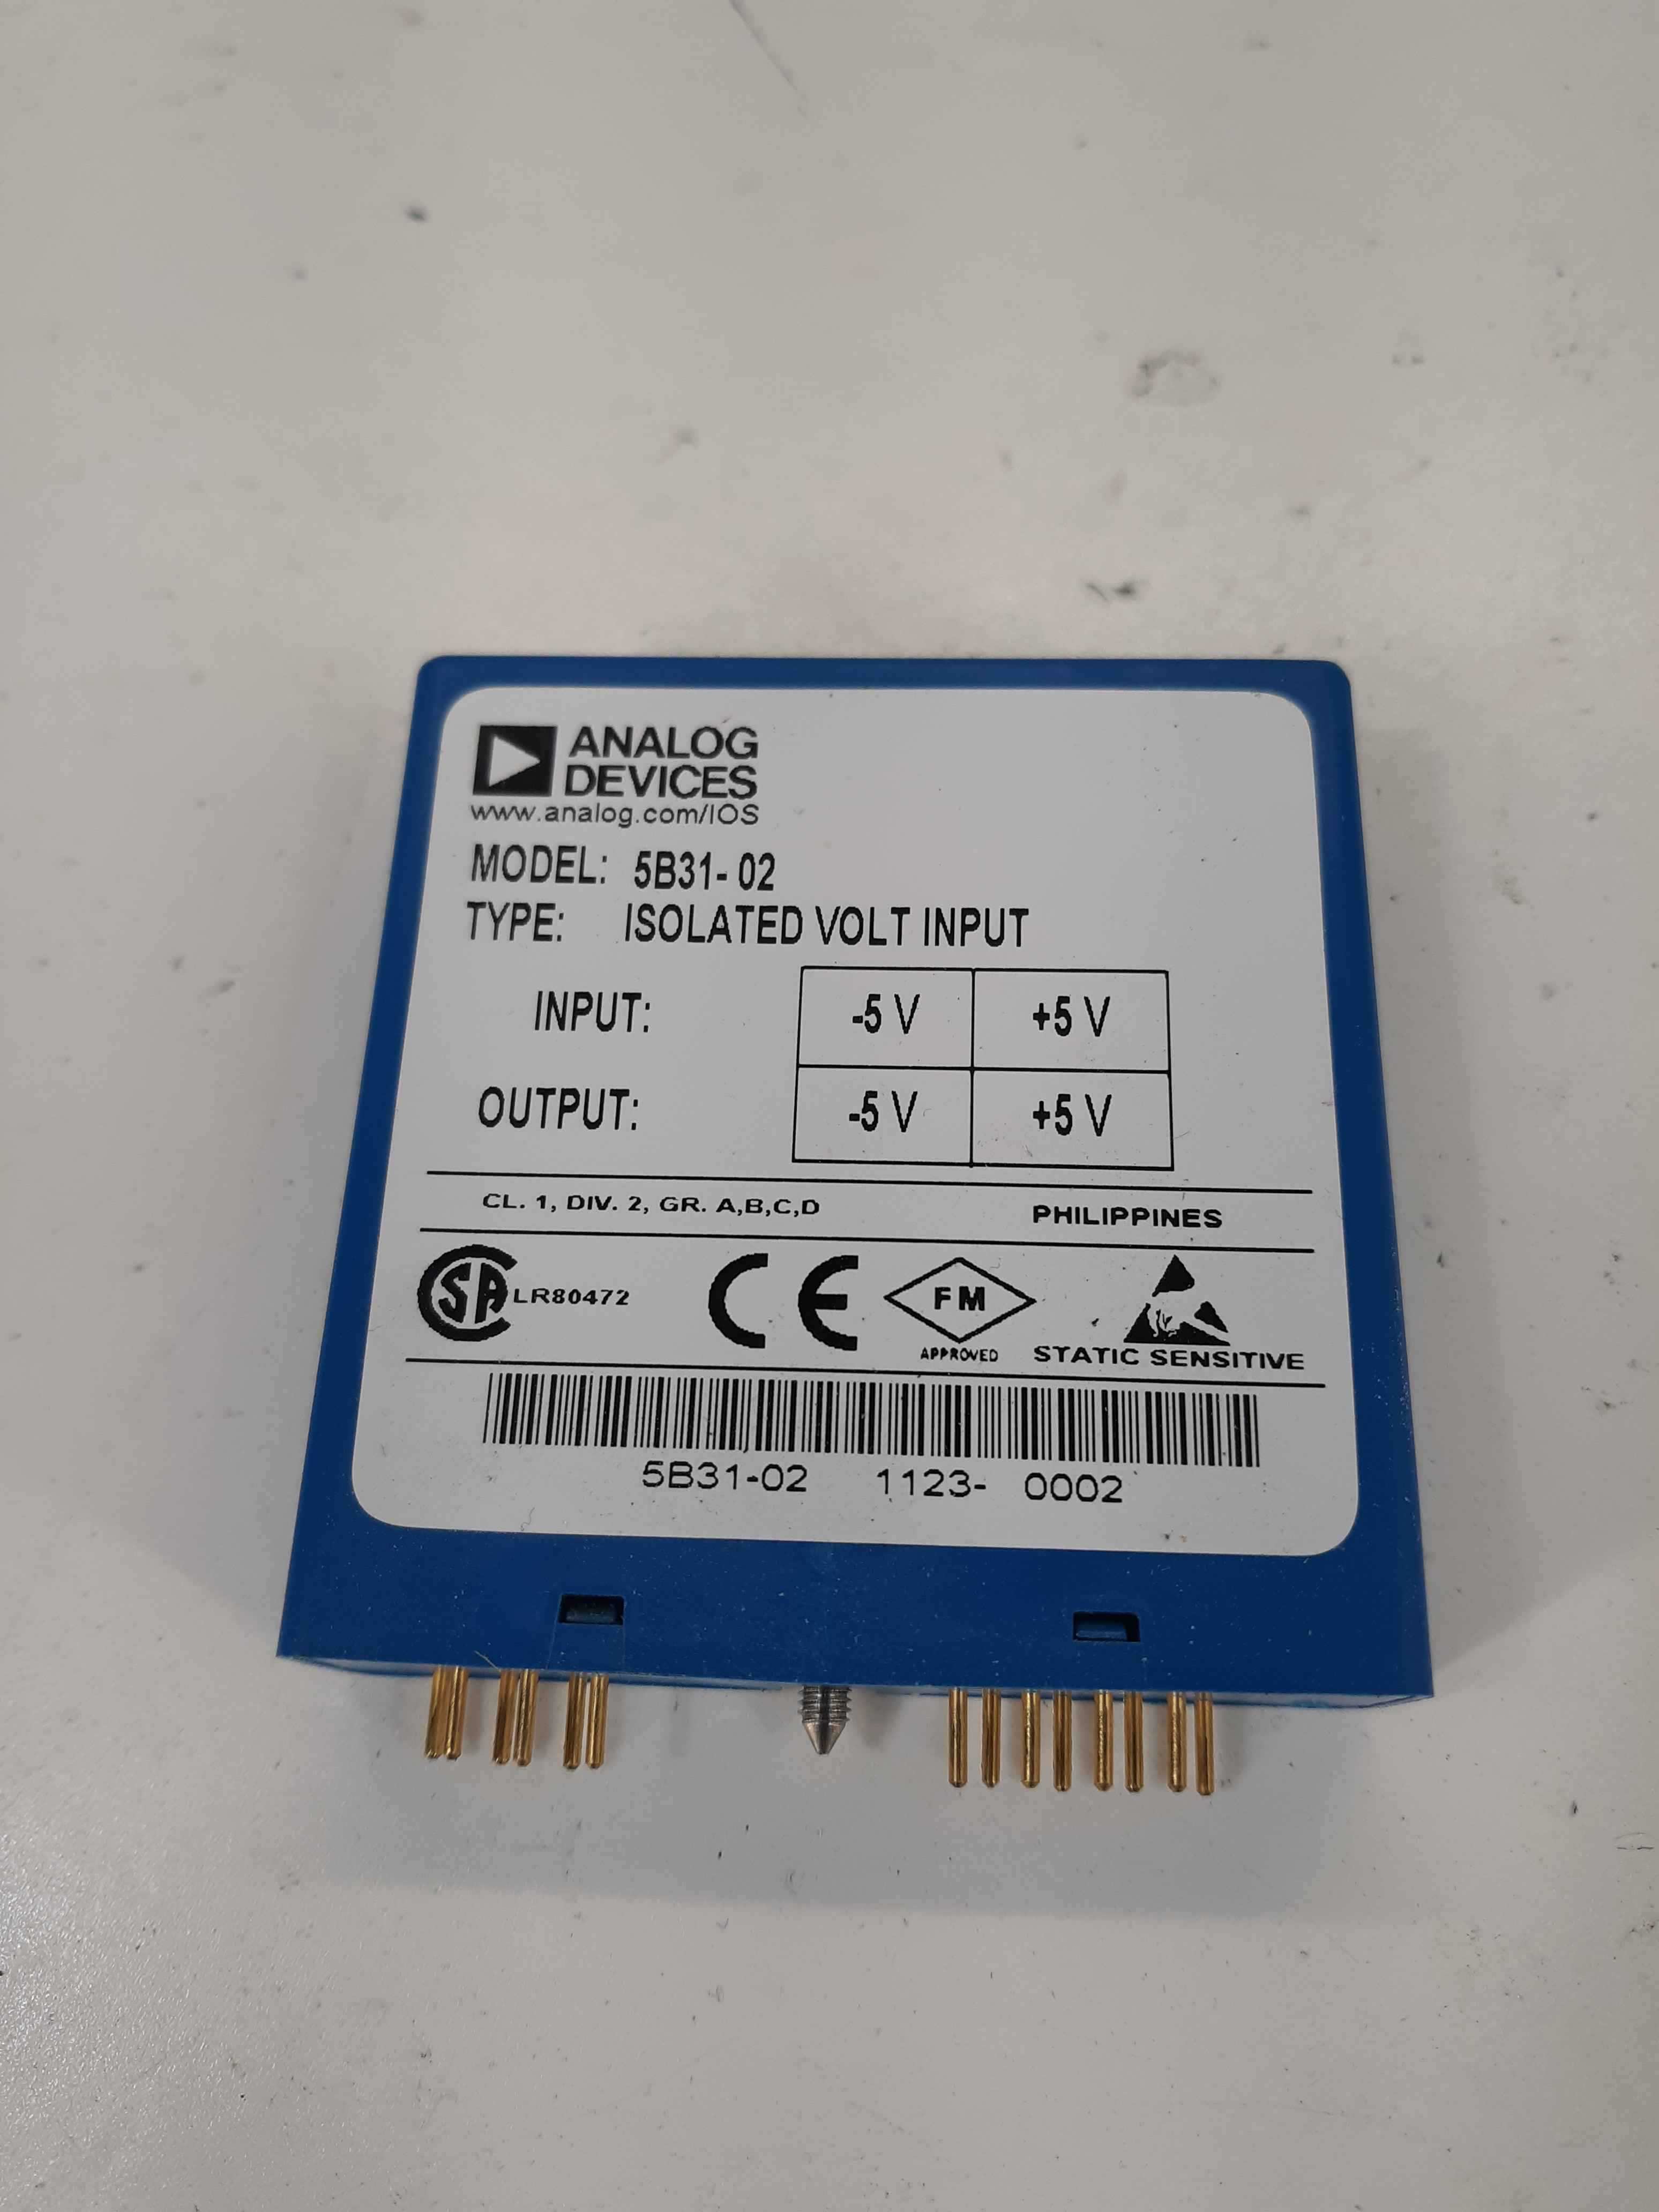 Analog Devices 5B31-02 Isolated Volt Input Module